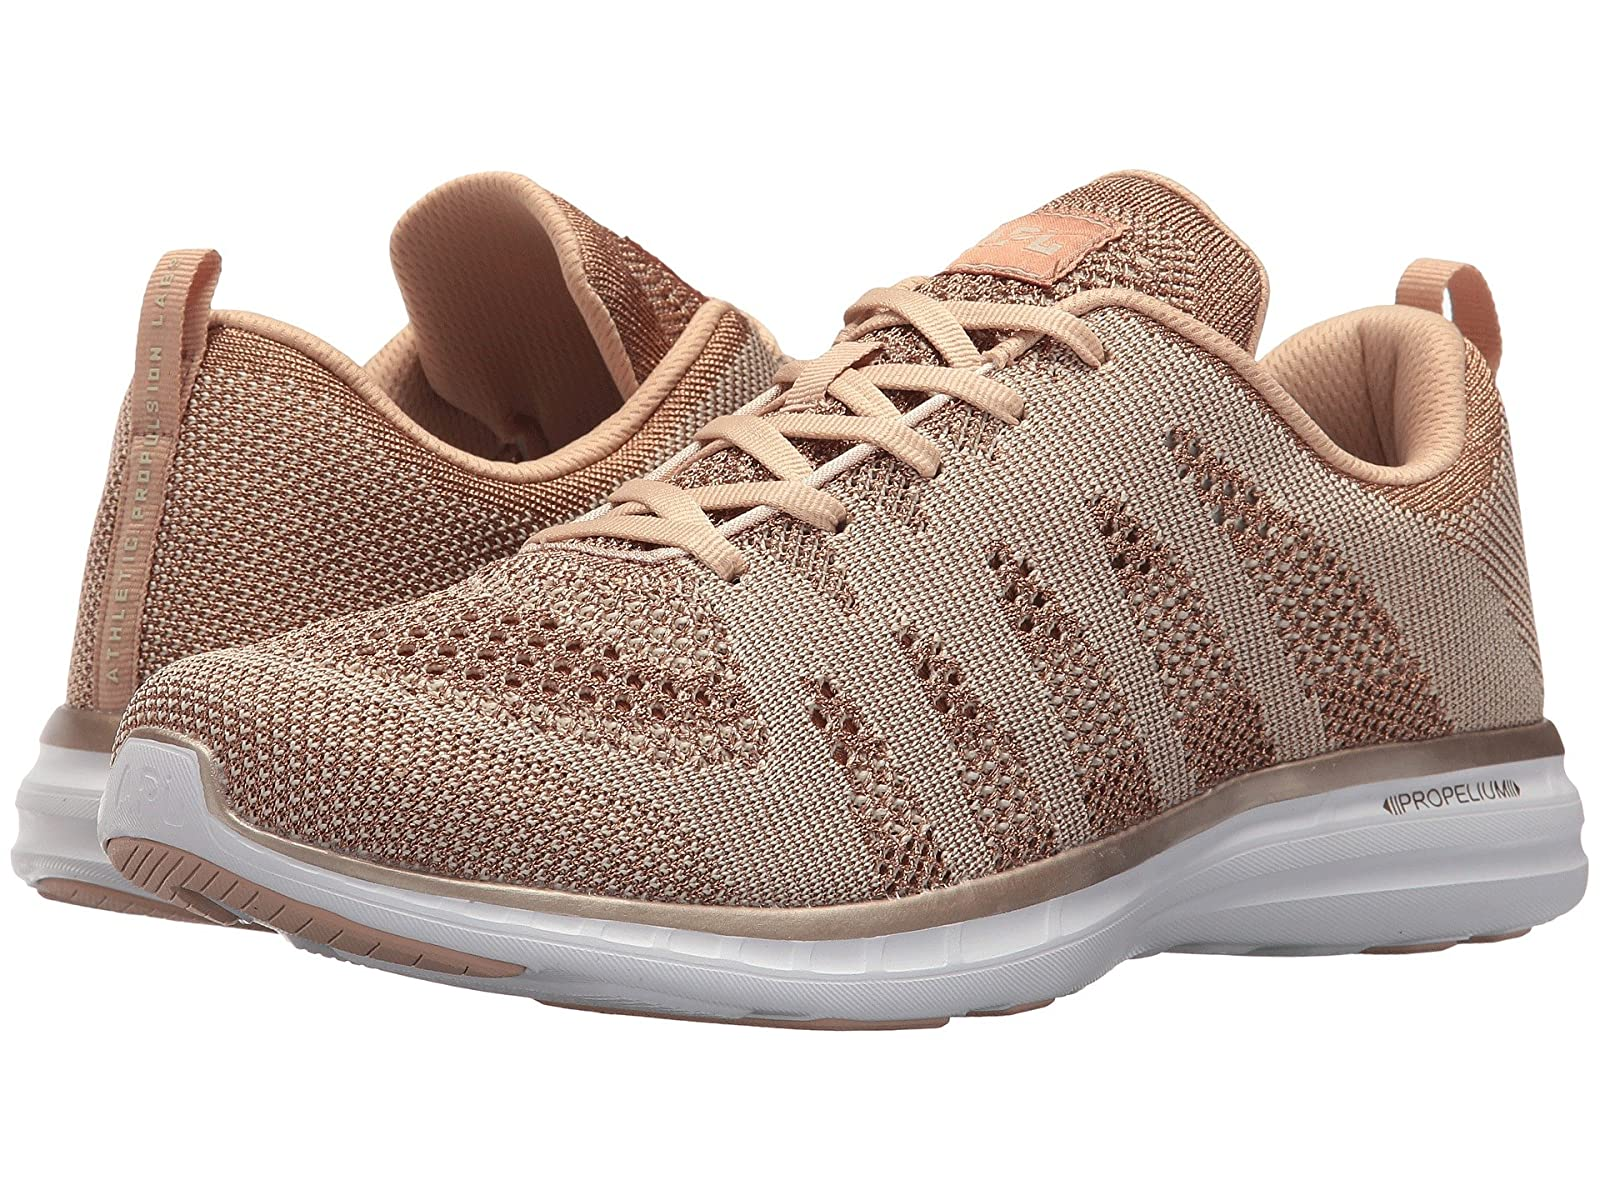 Athletic Propulsion Labs (APL) Techloom ProCheap and distinctive eye-catching shoes